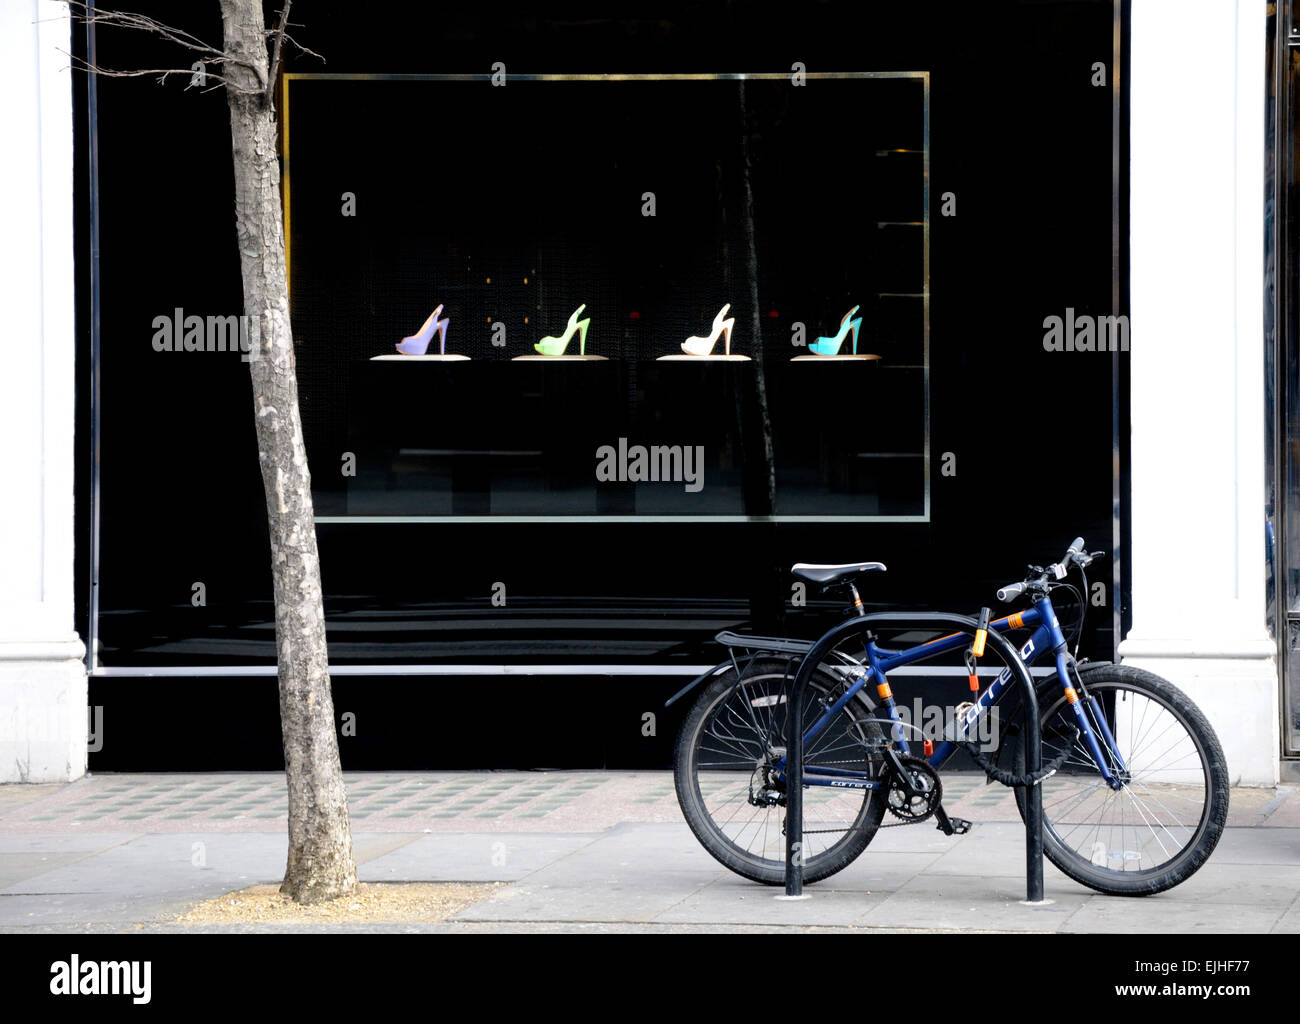 Bicycle Shop Window London Uk Stock Photos & Bicycle Shop Window ...